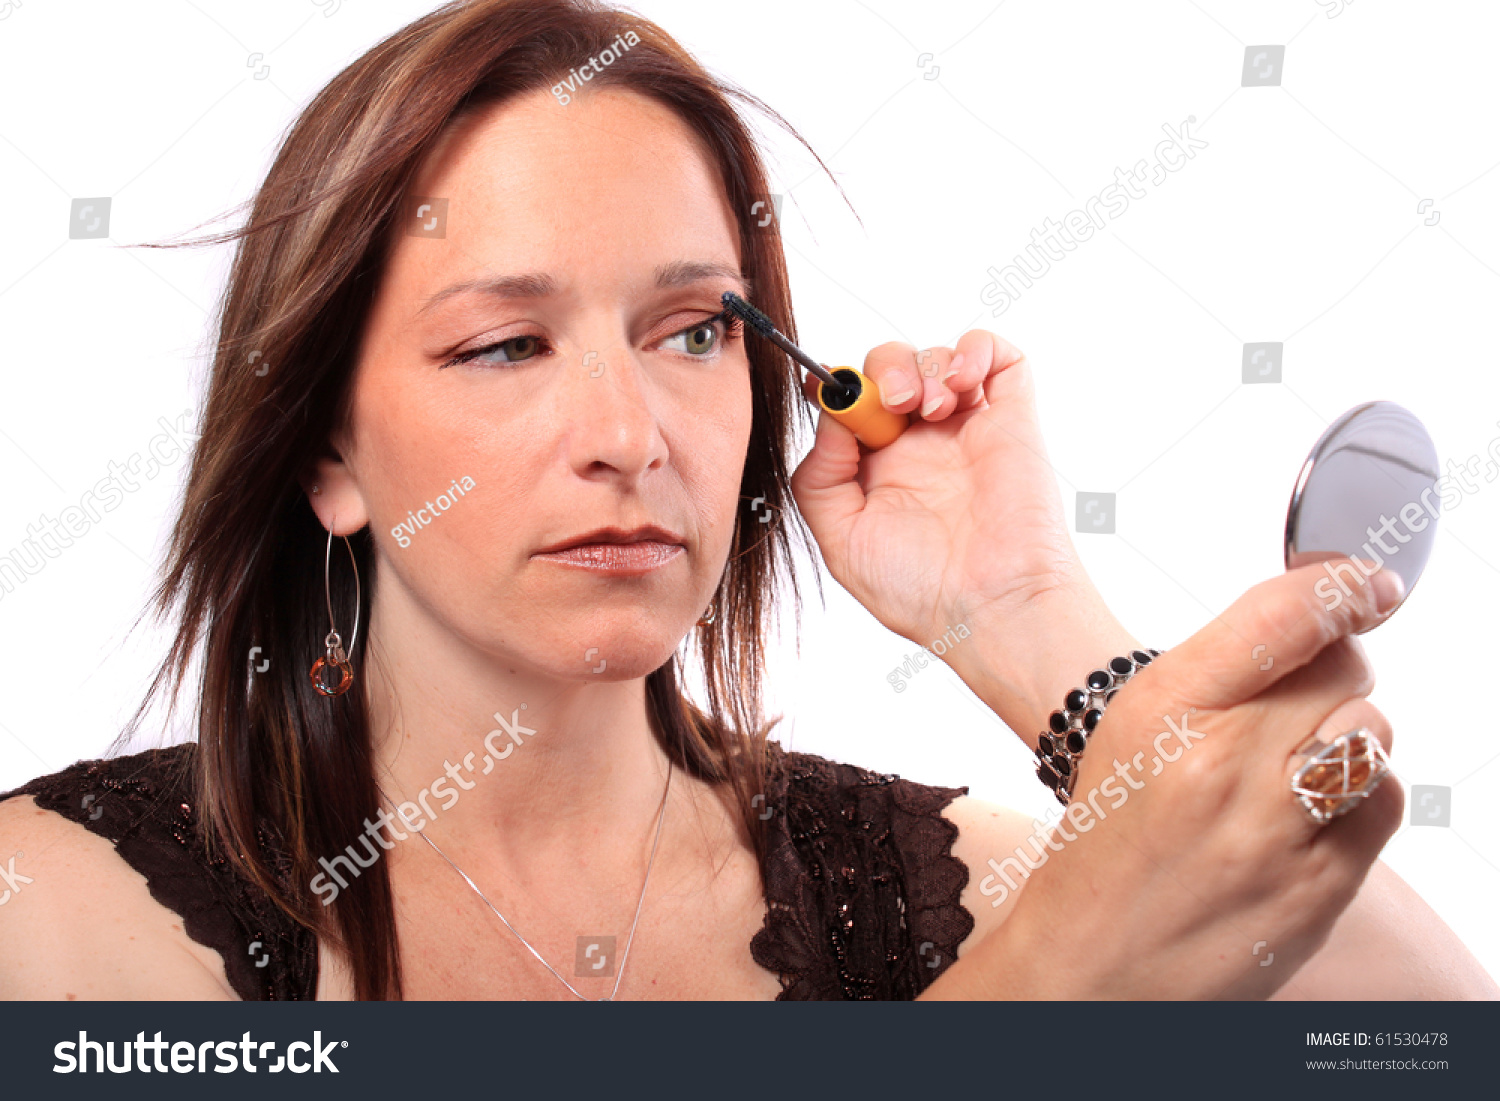 woman holding hand mirror. Woman Holding Hand Mirror Applies Mascara Stock Photo 61530478 - Shutterstock